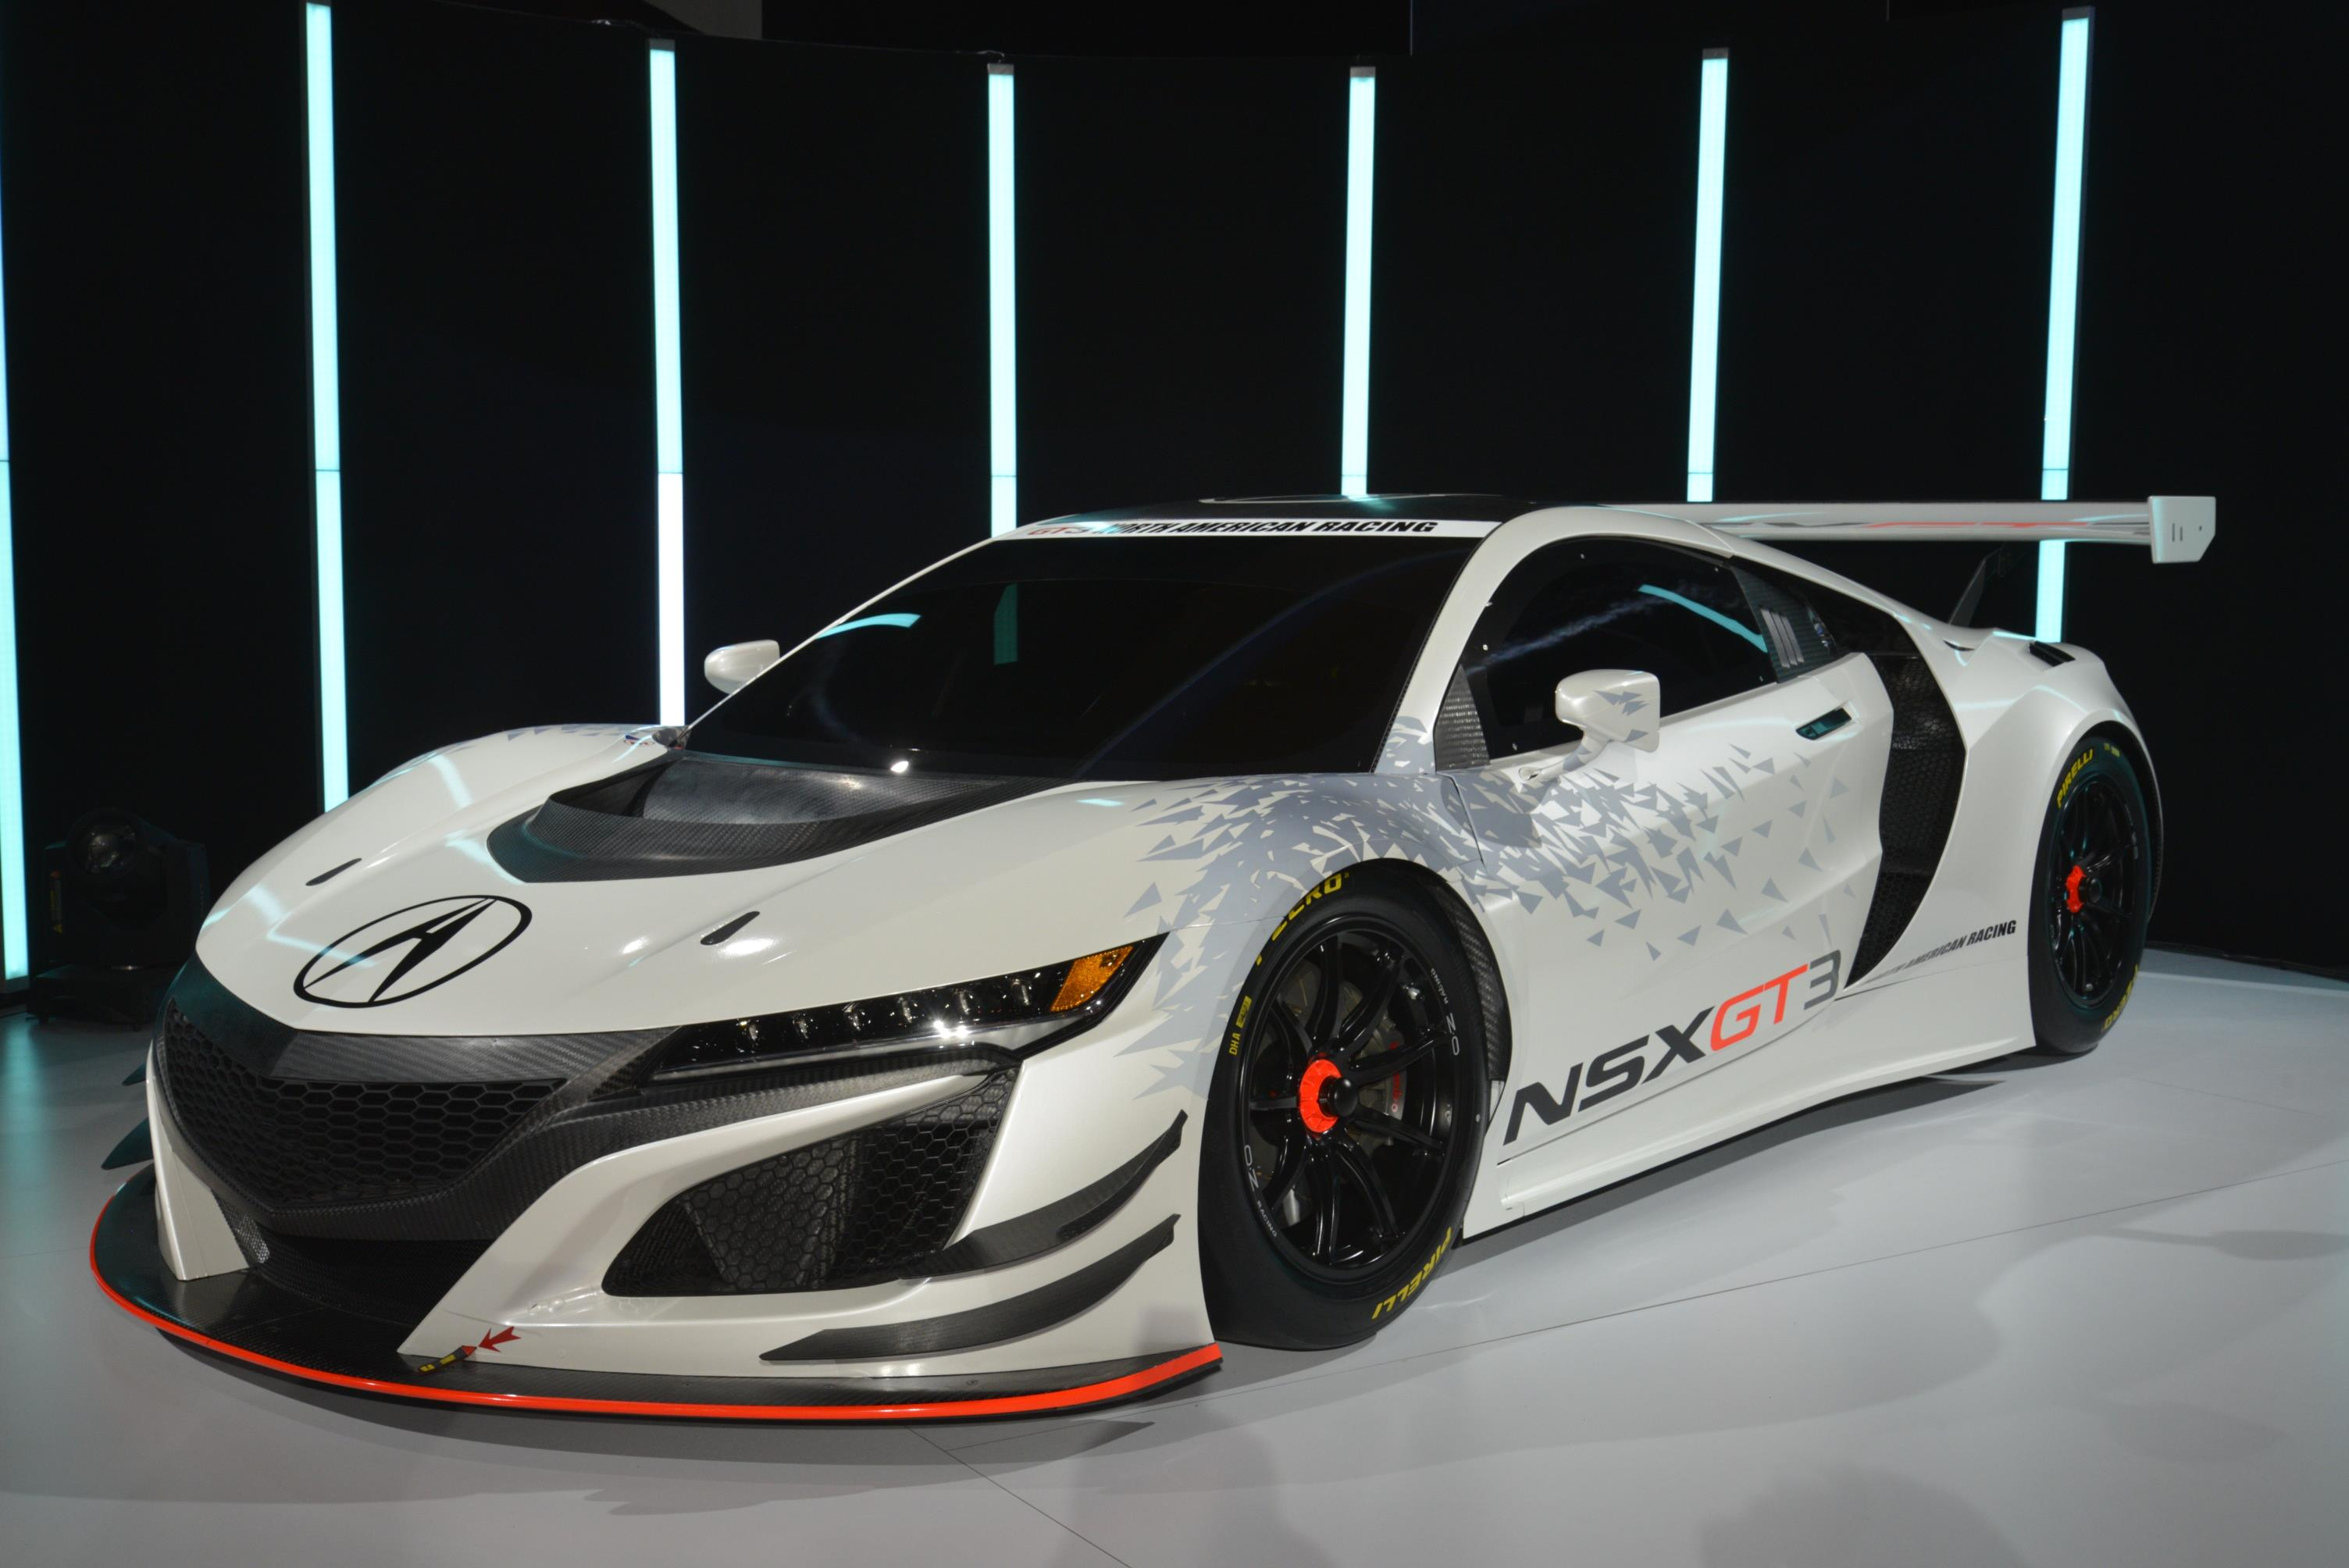 Acura Tlx Hybrid >> 2017 Acura NSX GT3 Racecar Ditches Hybrid and AWD Systems ...